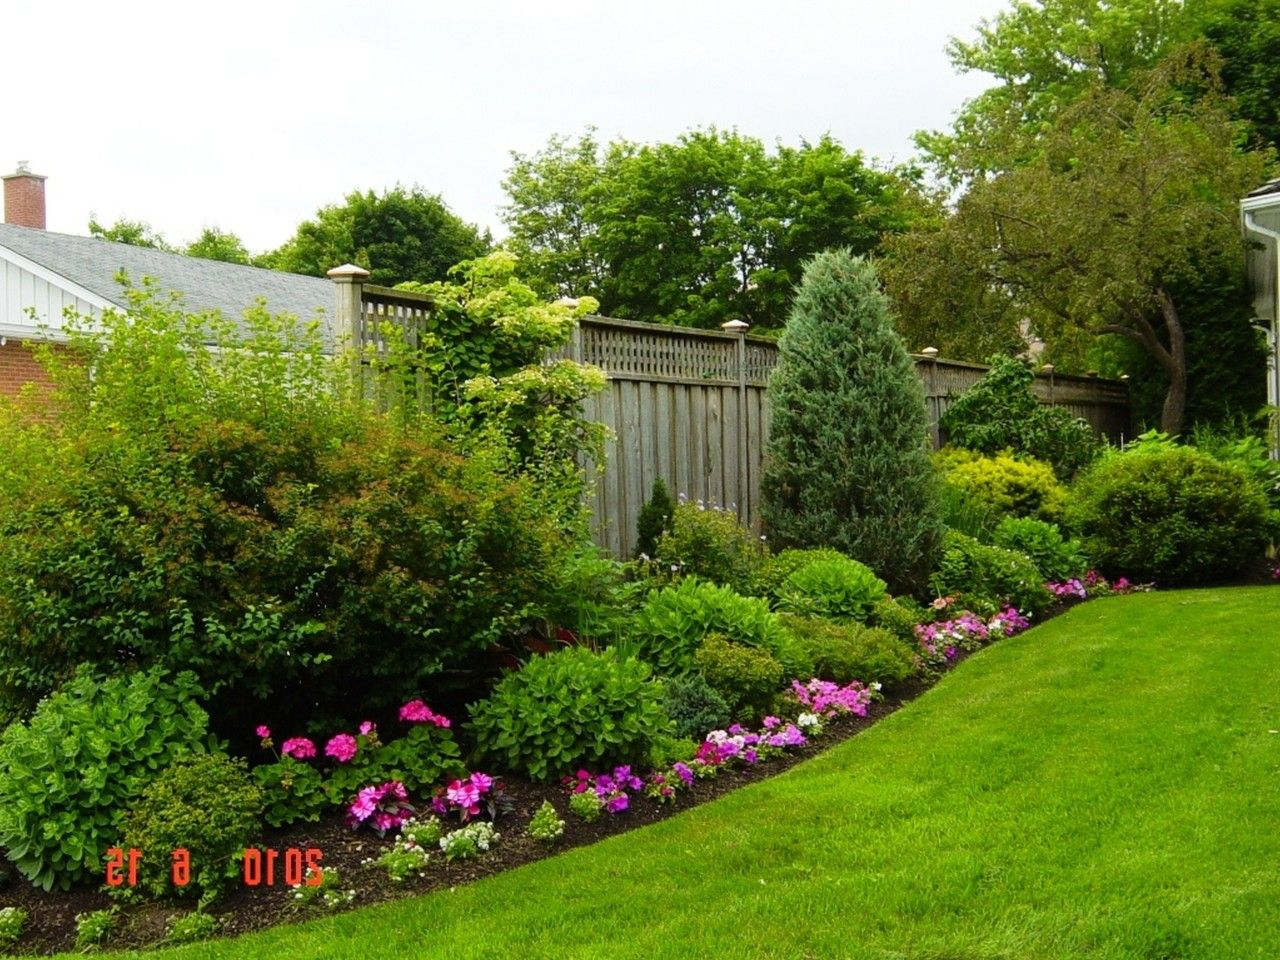 Simple backyard flower gardens - Backyard Landscaping Ideas Ideas For Flower Gardens Garden Idea